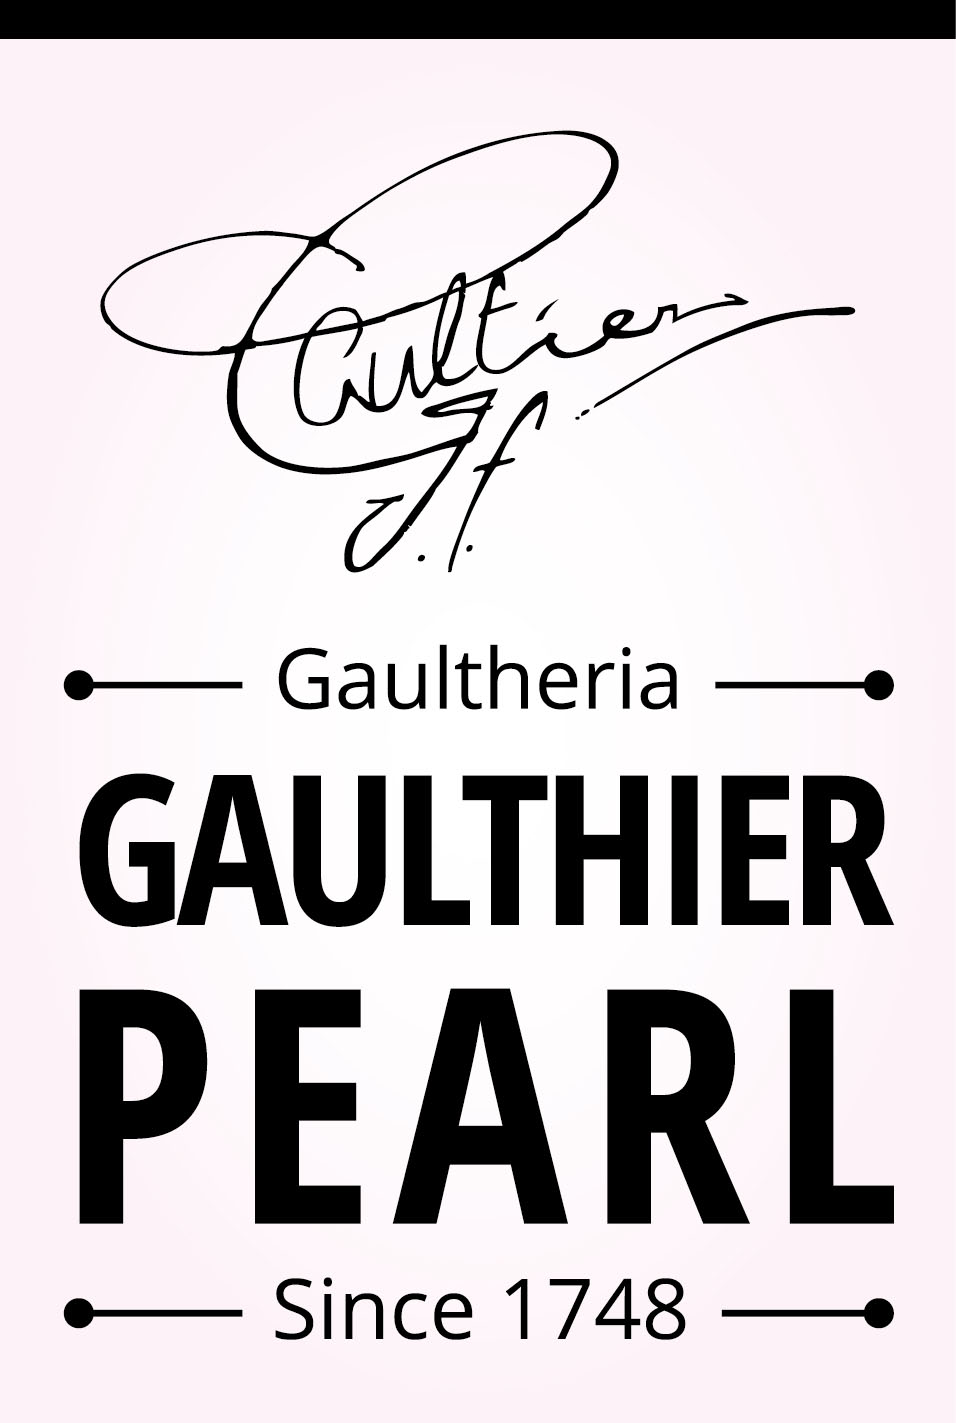 Image of Gaultheria Gaulthier Pearl®